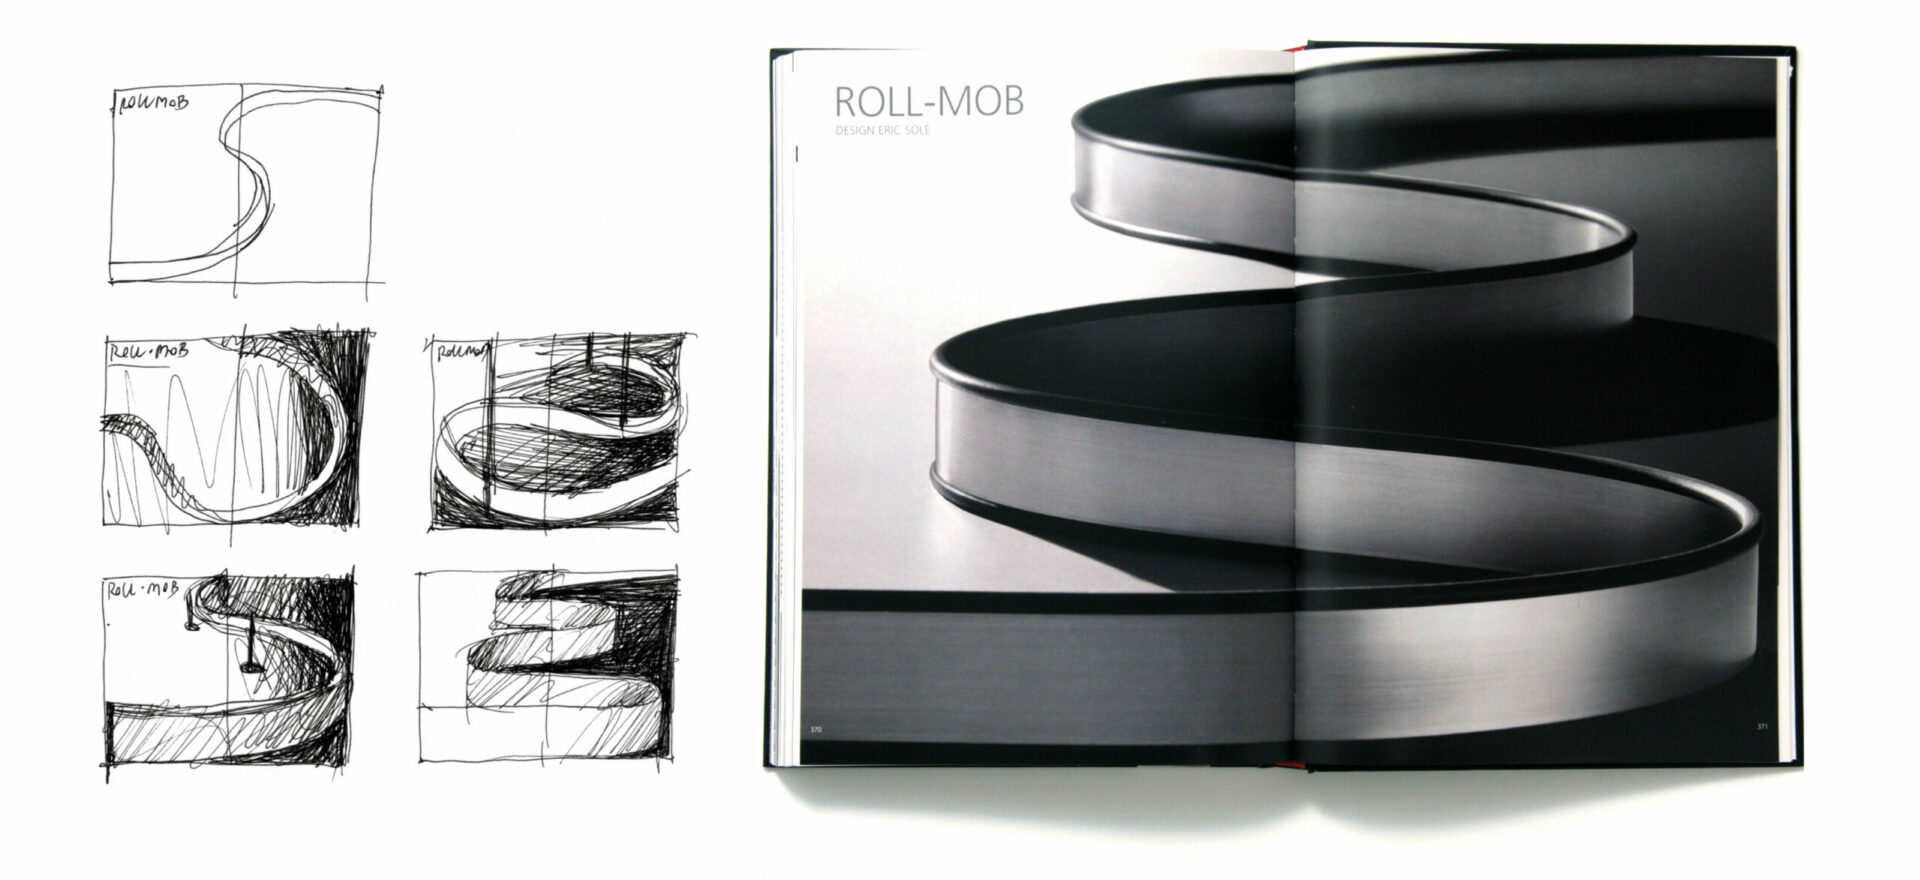 Greyscale Technical Brochure for Artemide Architectural, light design with 5 sketches in greyscale and the opened brochure on the right showing model Roll-Mob in a withe background.